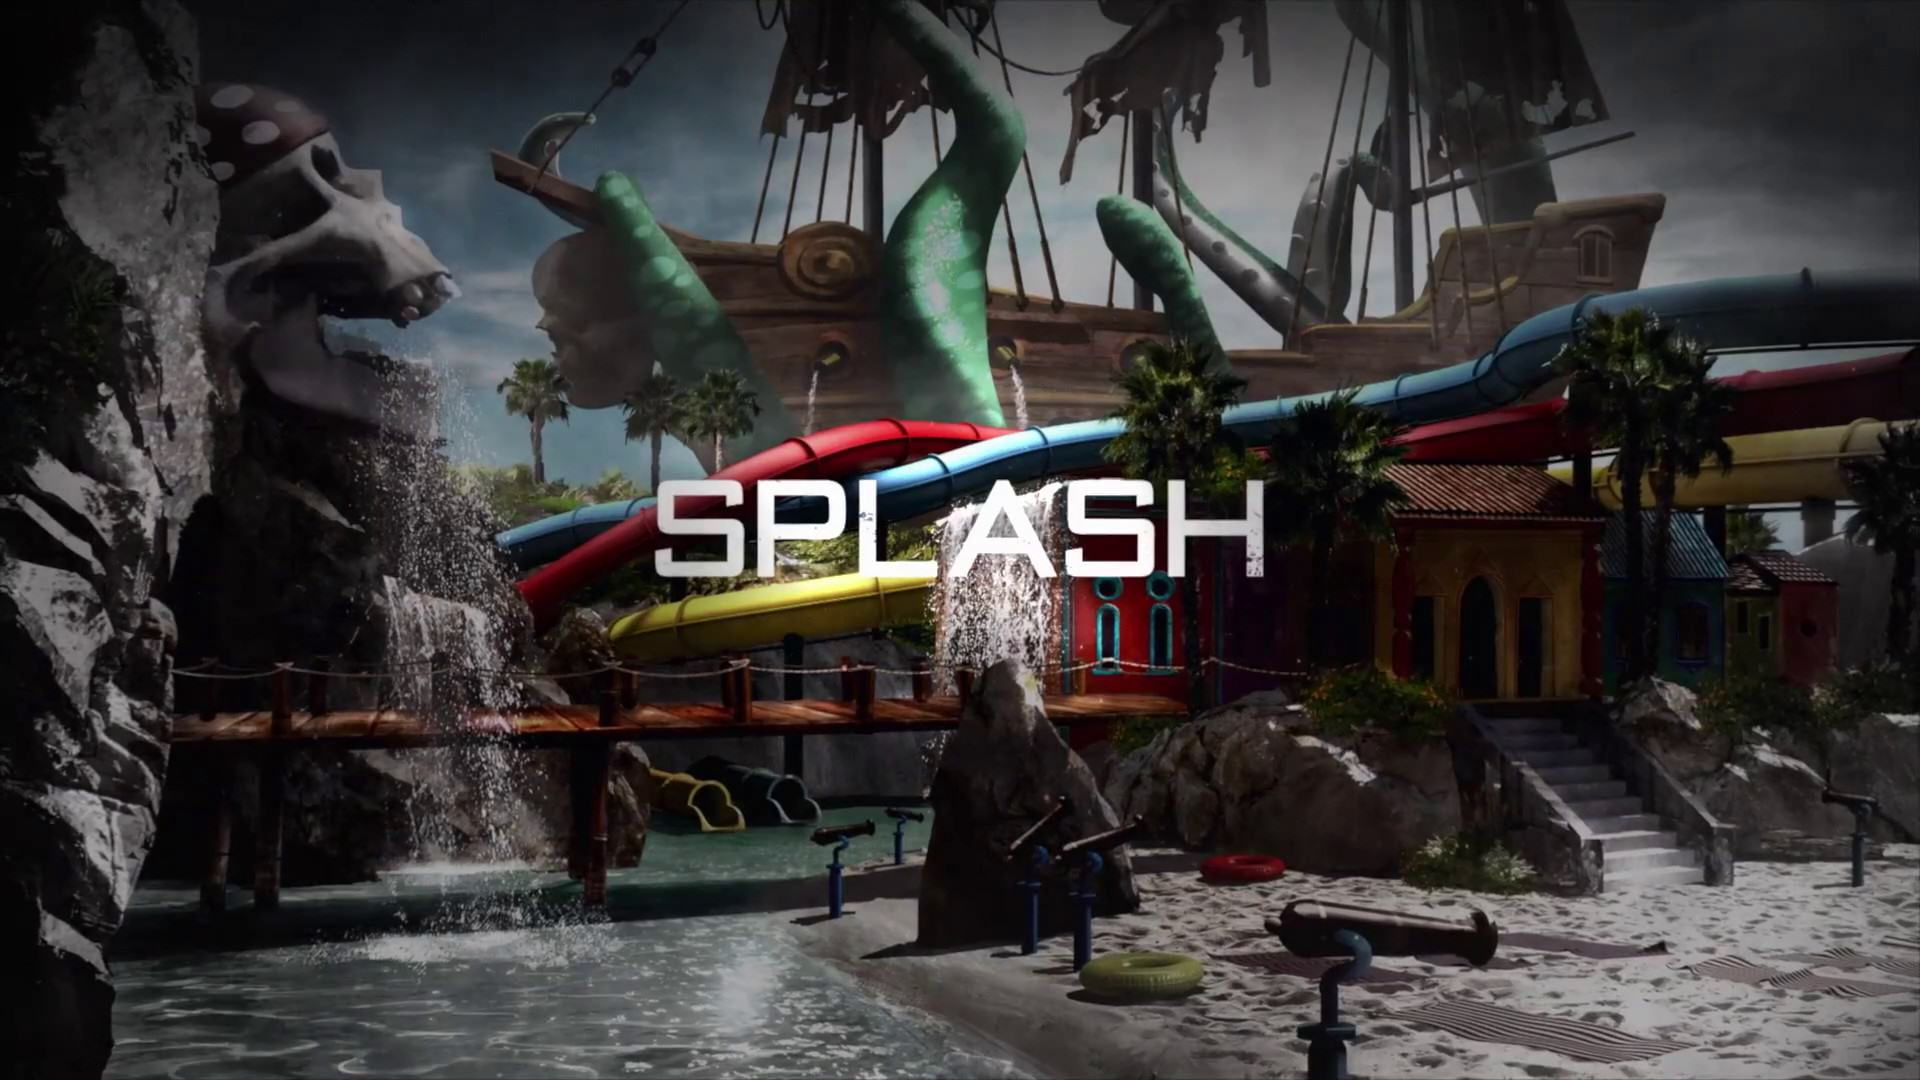 splash Activision Tease New Black Ops 3 DLC Multiplayer Map Skyjacked